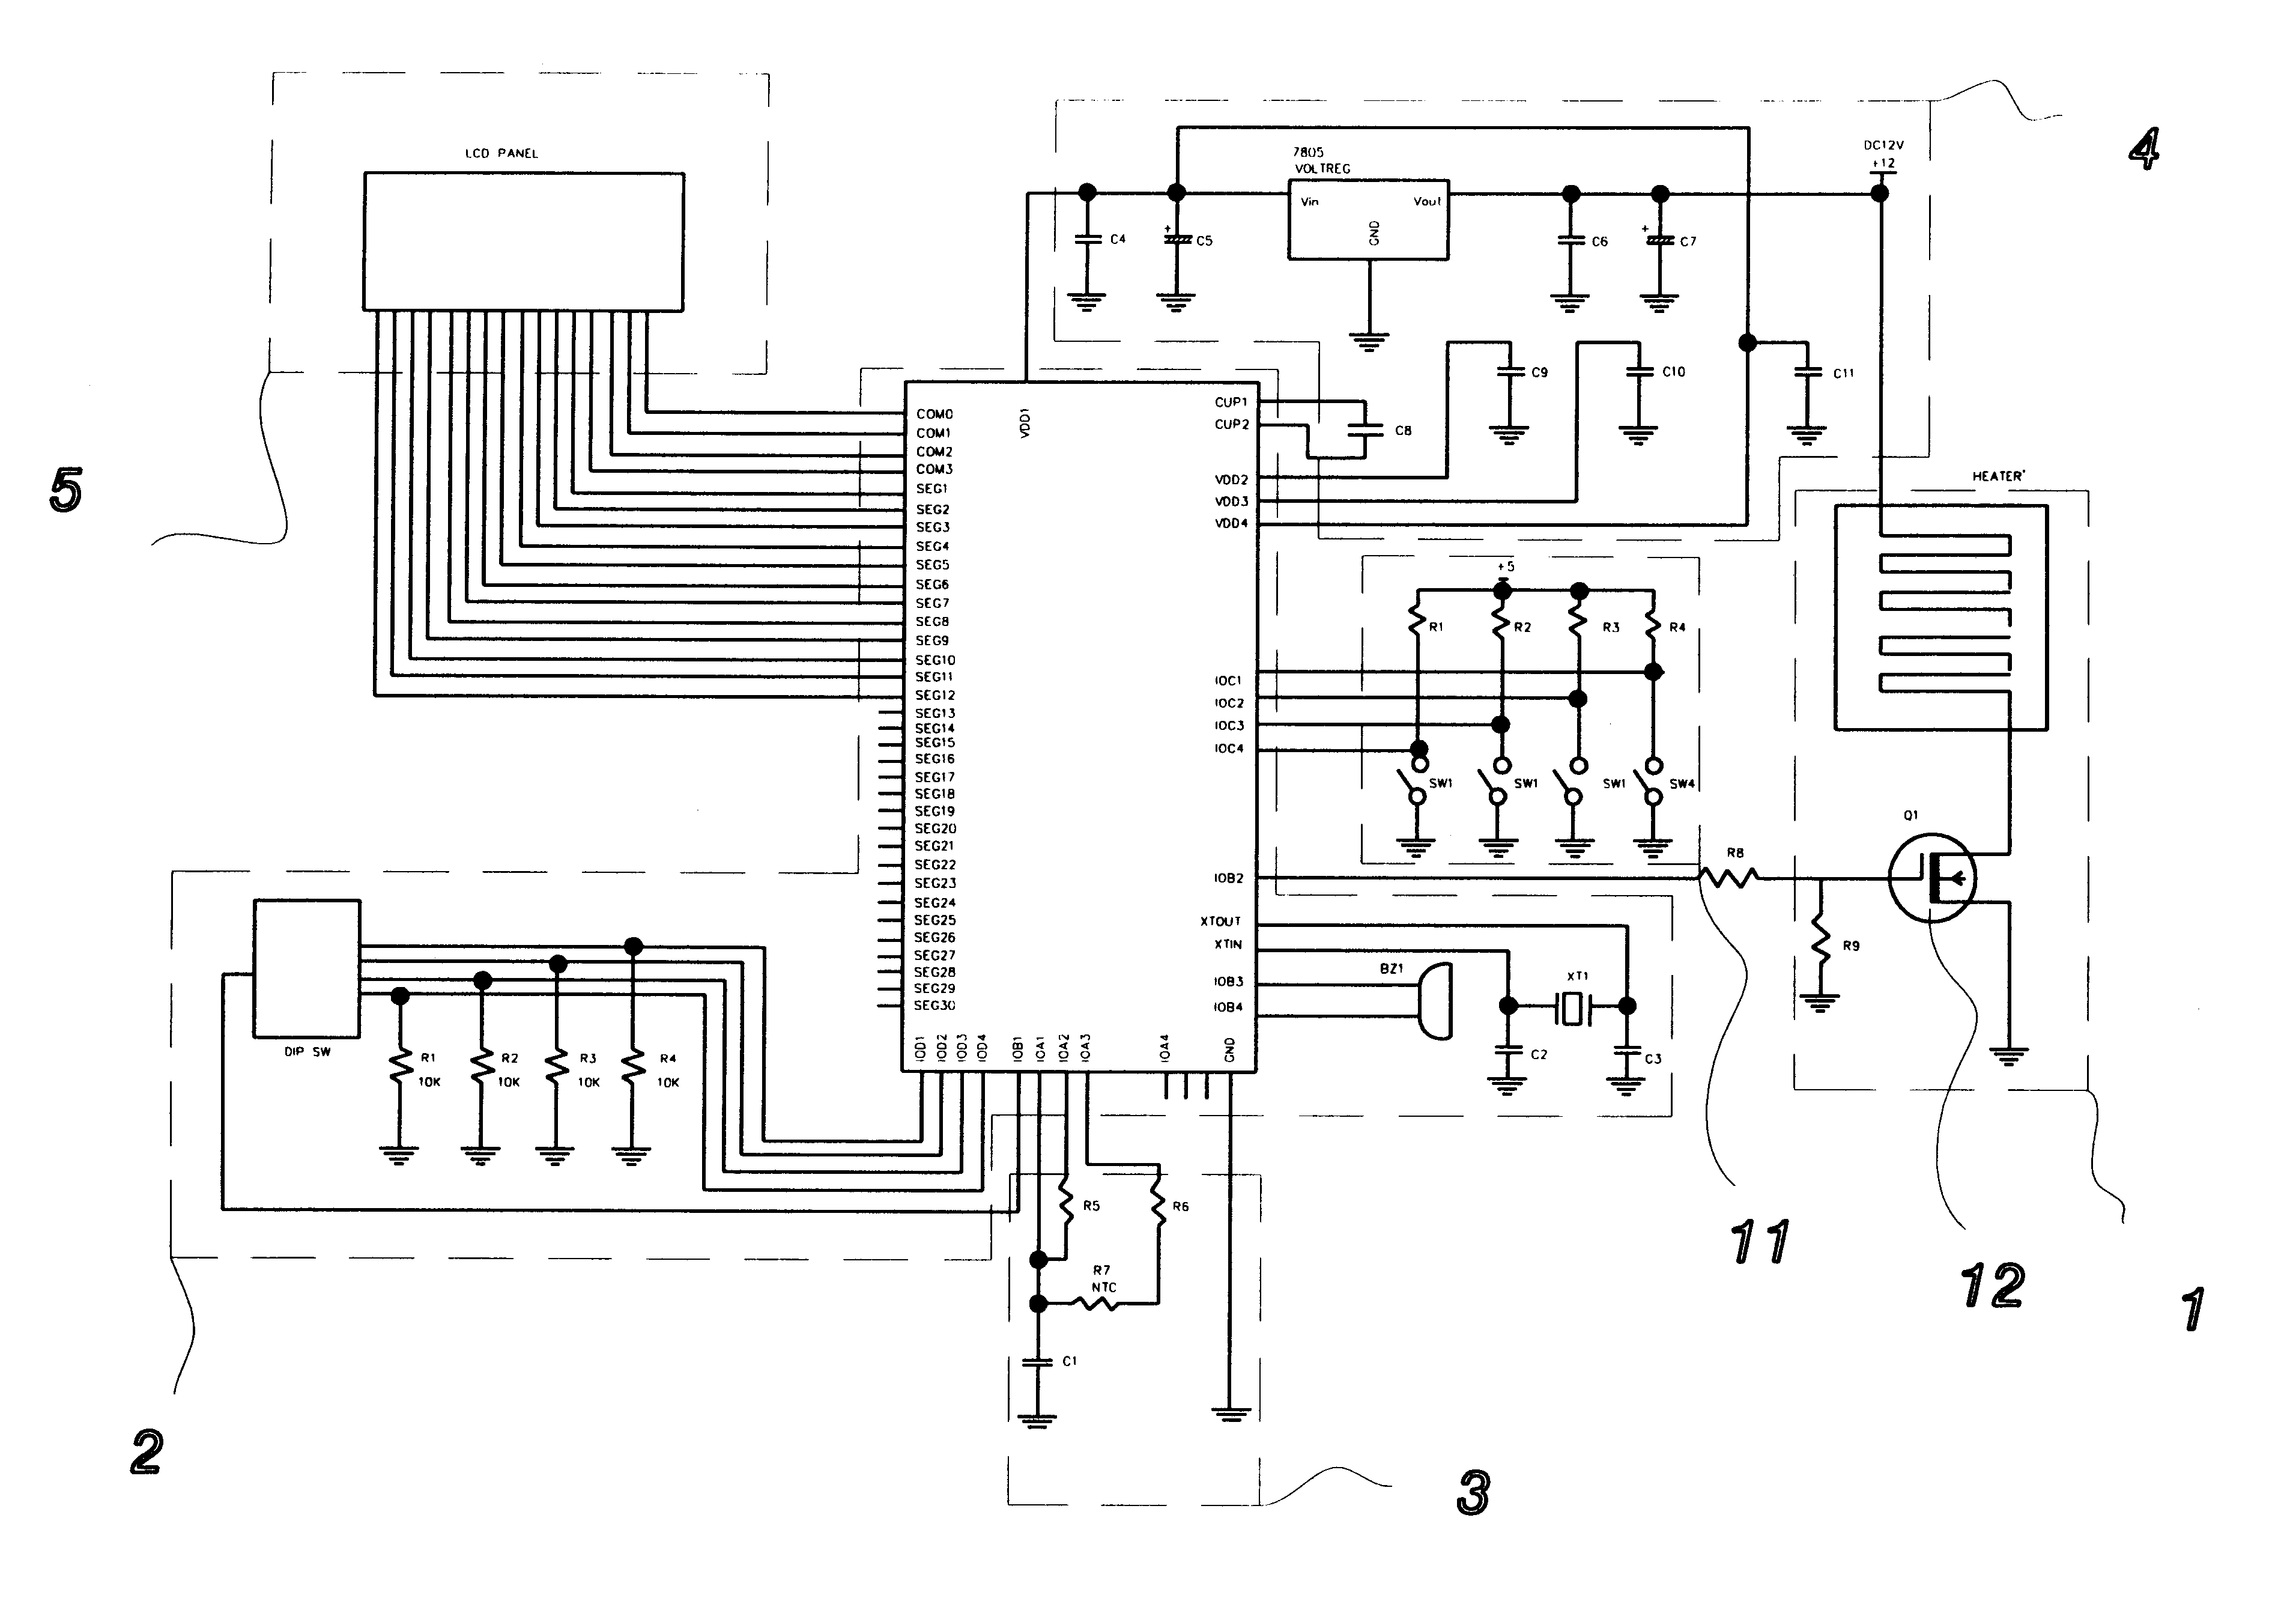 Patent Us6563090 - Electric Heating Blanket Control Circuit Assembly